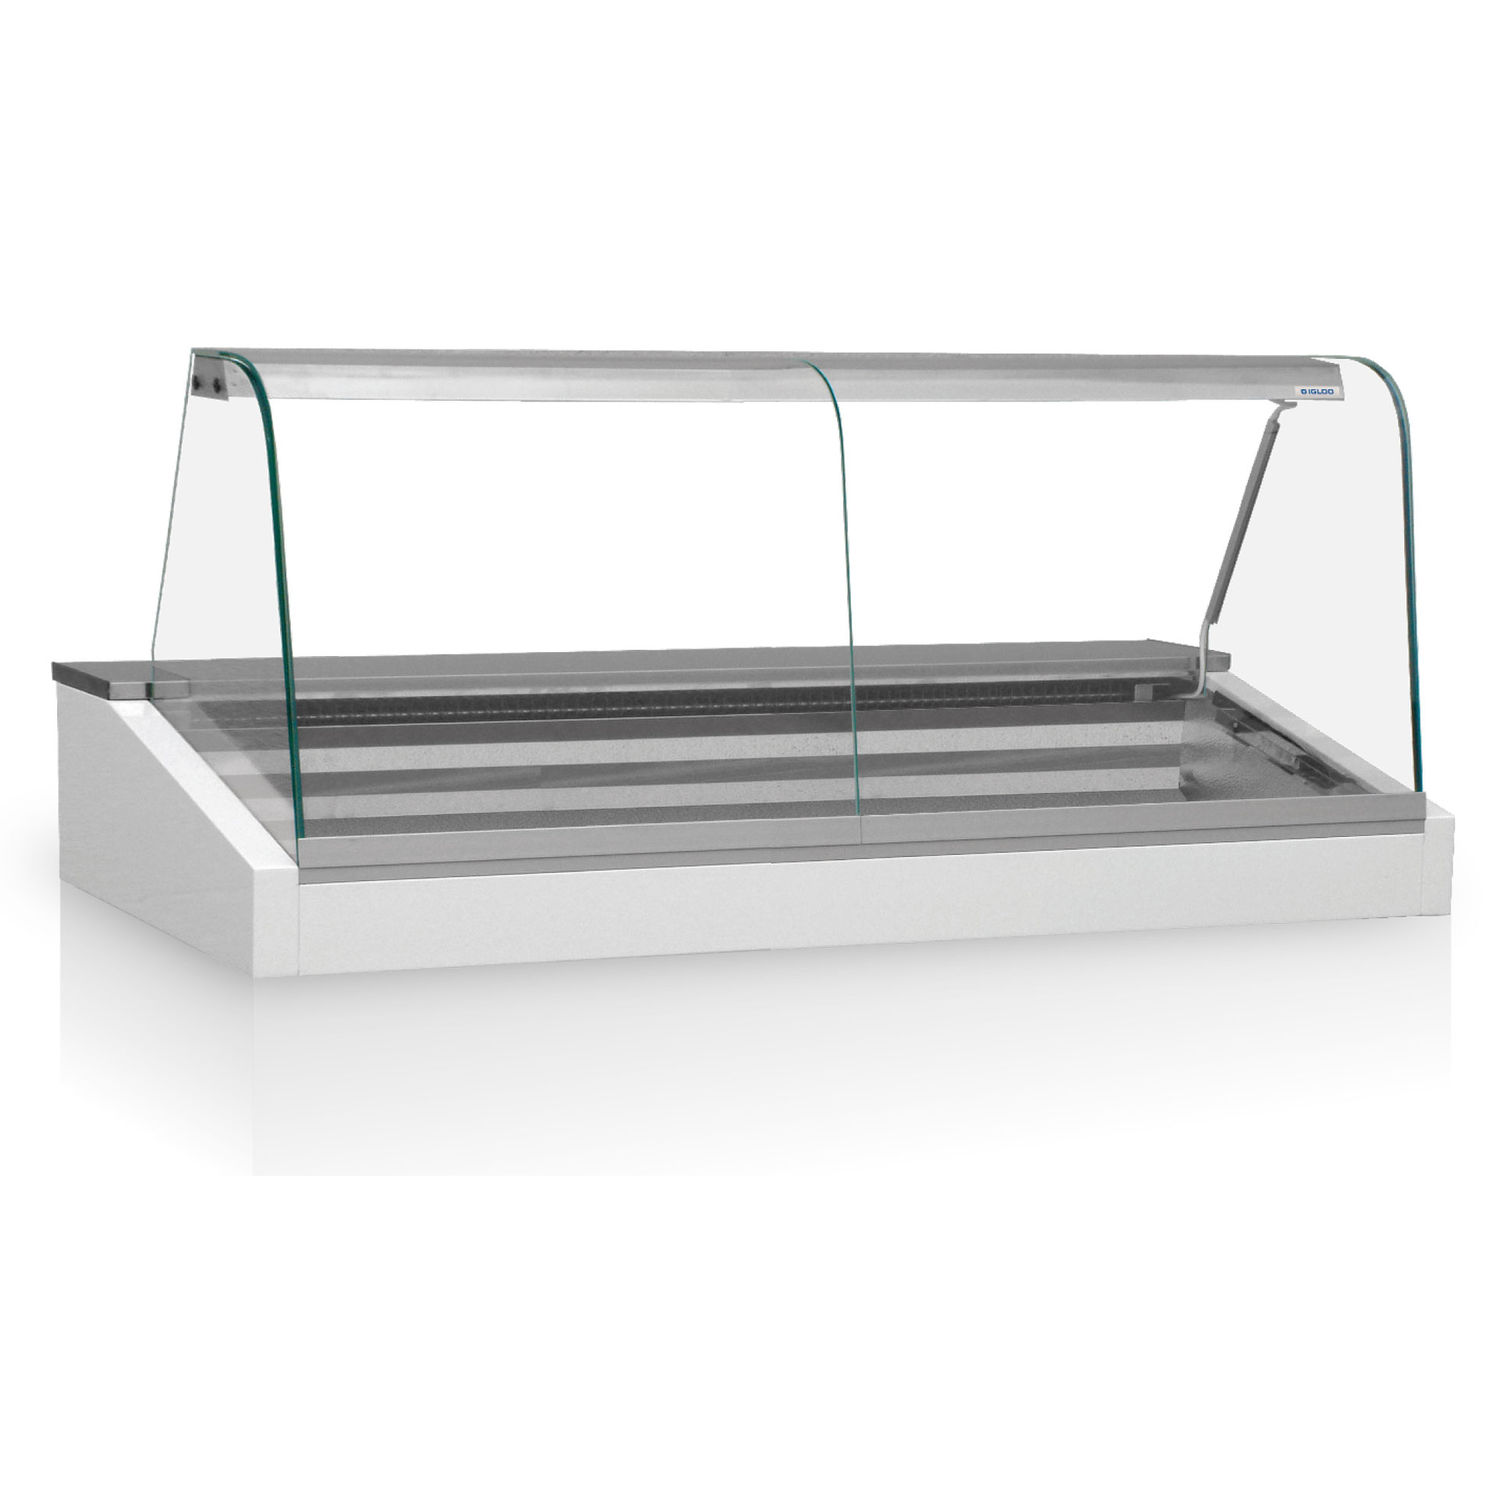 Refrigerated countertop display case / illuminated / for shops ...